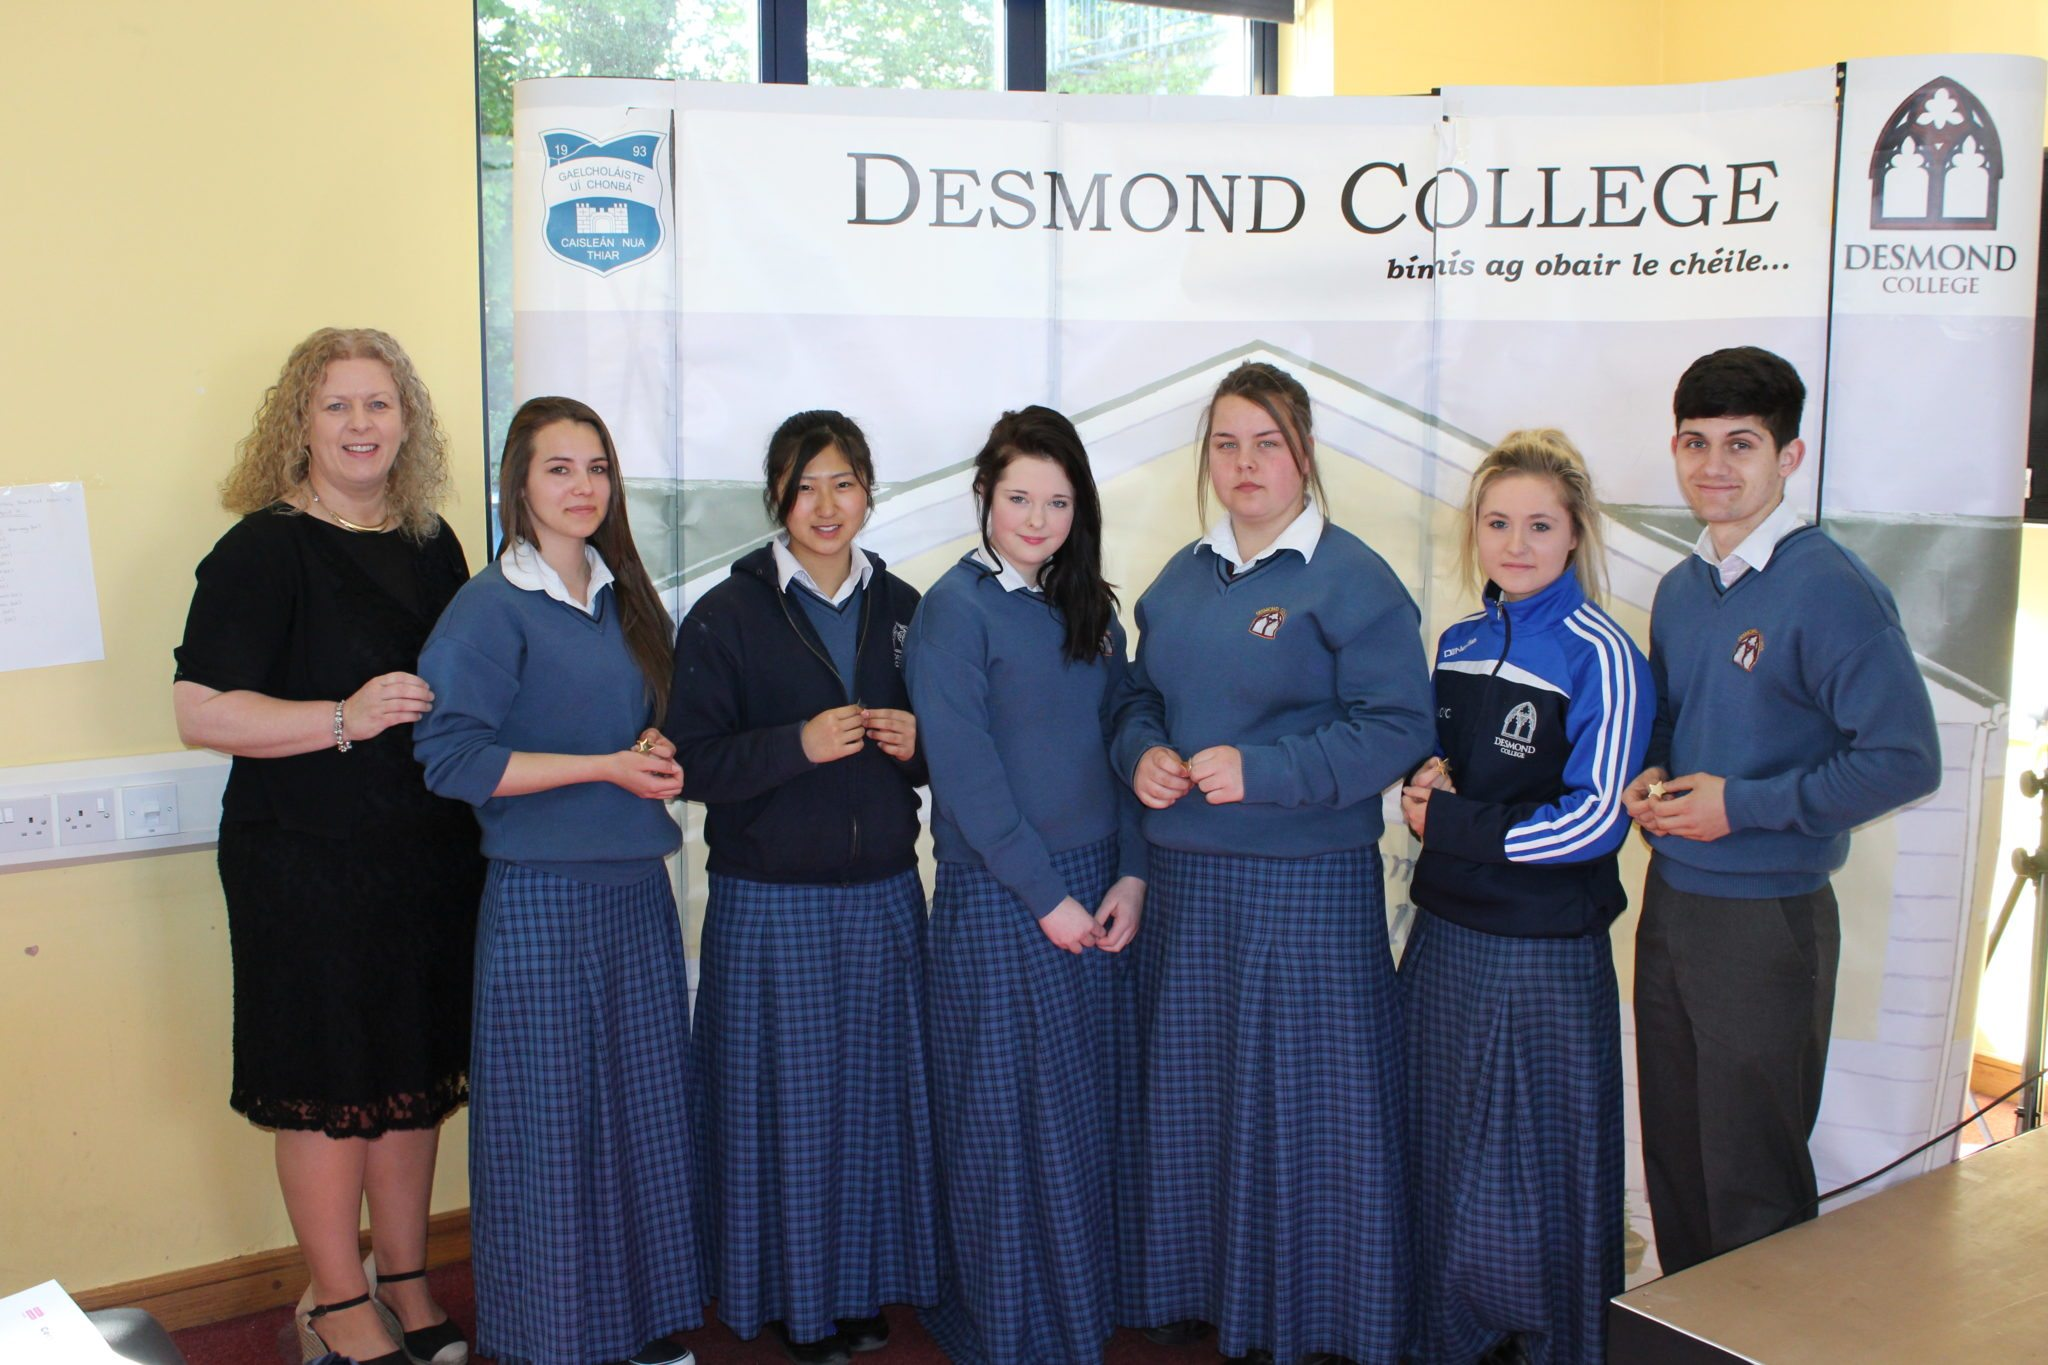 Desmond College Student Awards: May 2015: CO-OPERATION AND DILIGENCE AWARDS : 5th year : Ms Gavin Barry with Bogimilia Jedrzejowska, Risa Sato, Megan Hartigan, Clara Derwin, Ava O'Connor and Shane Lee